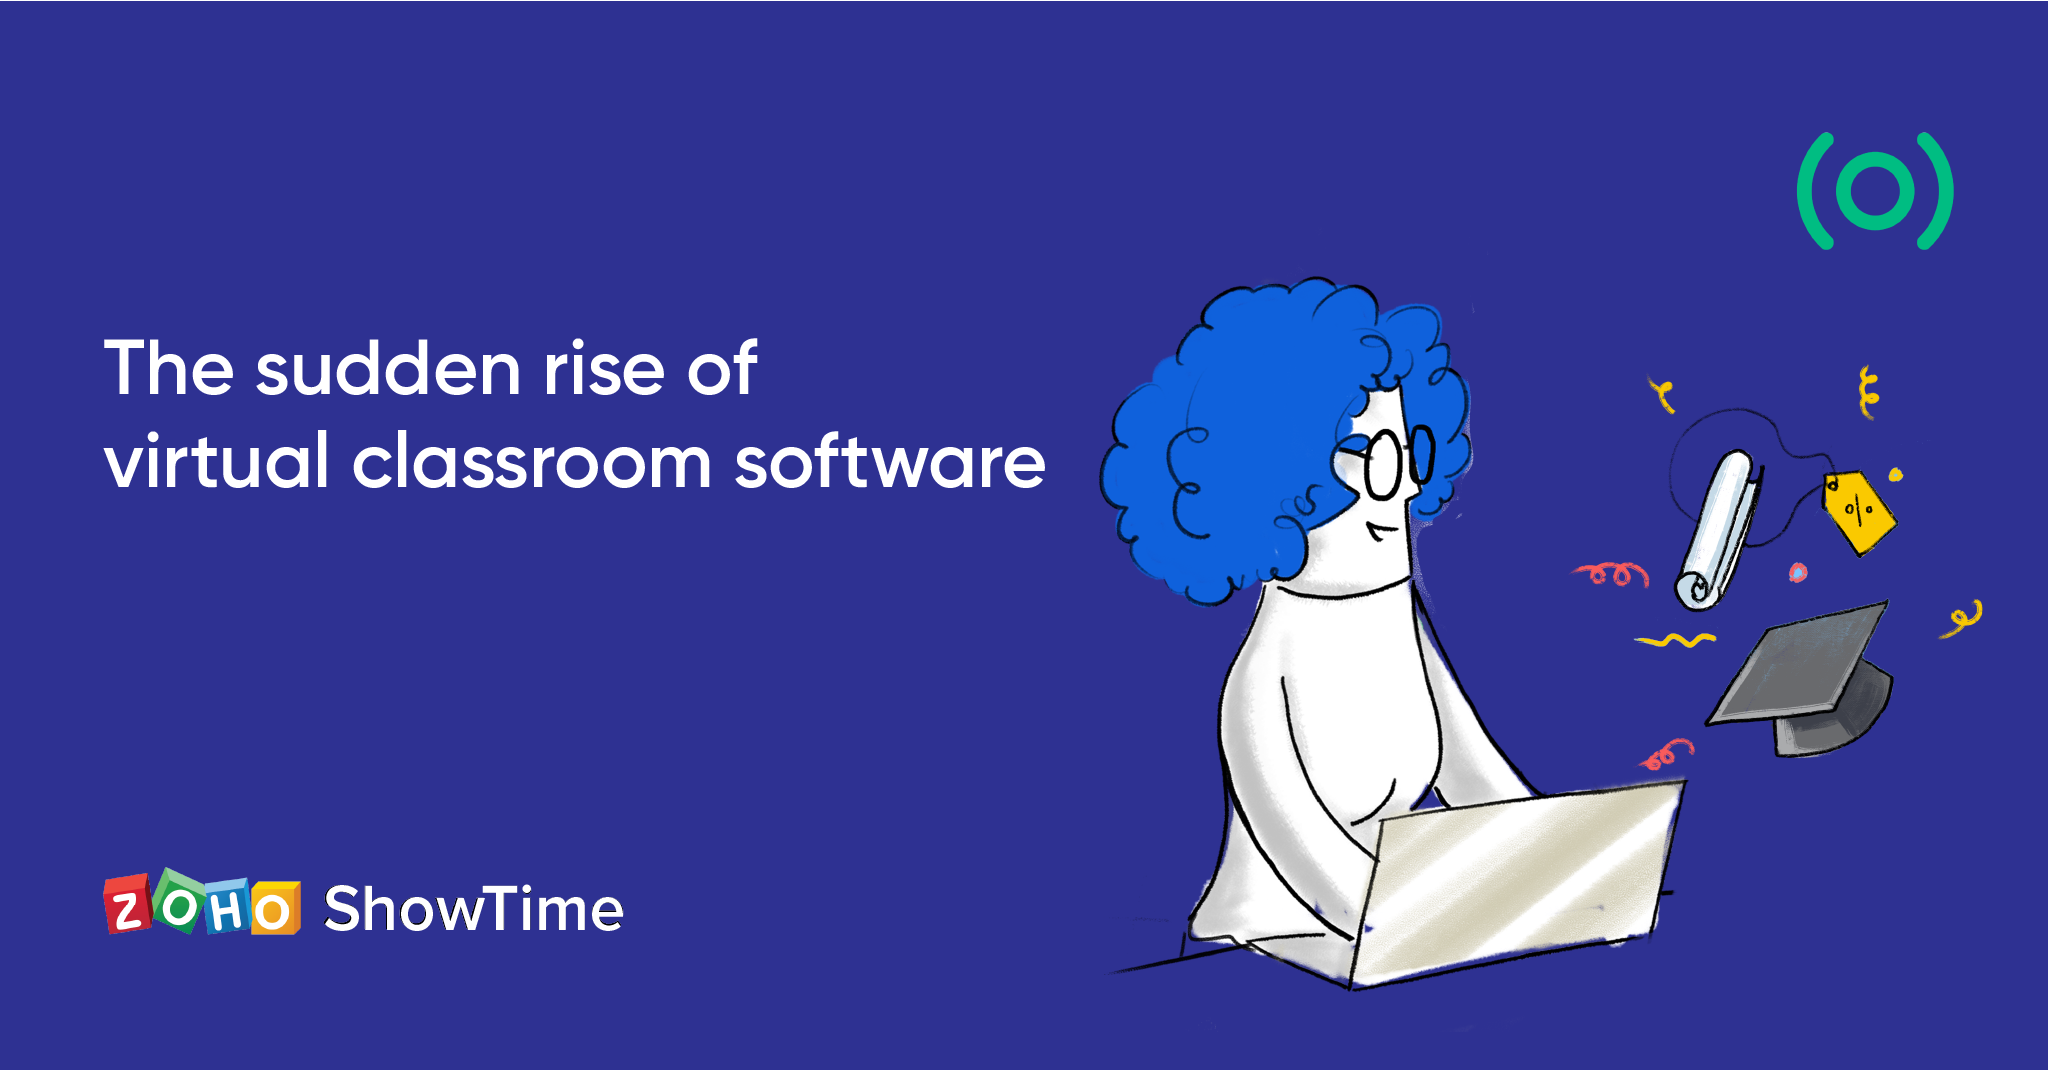 The sudden rise of virtual classroom software